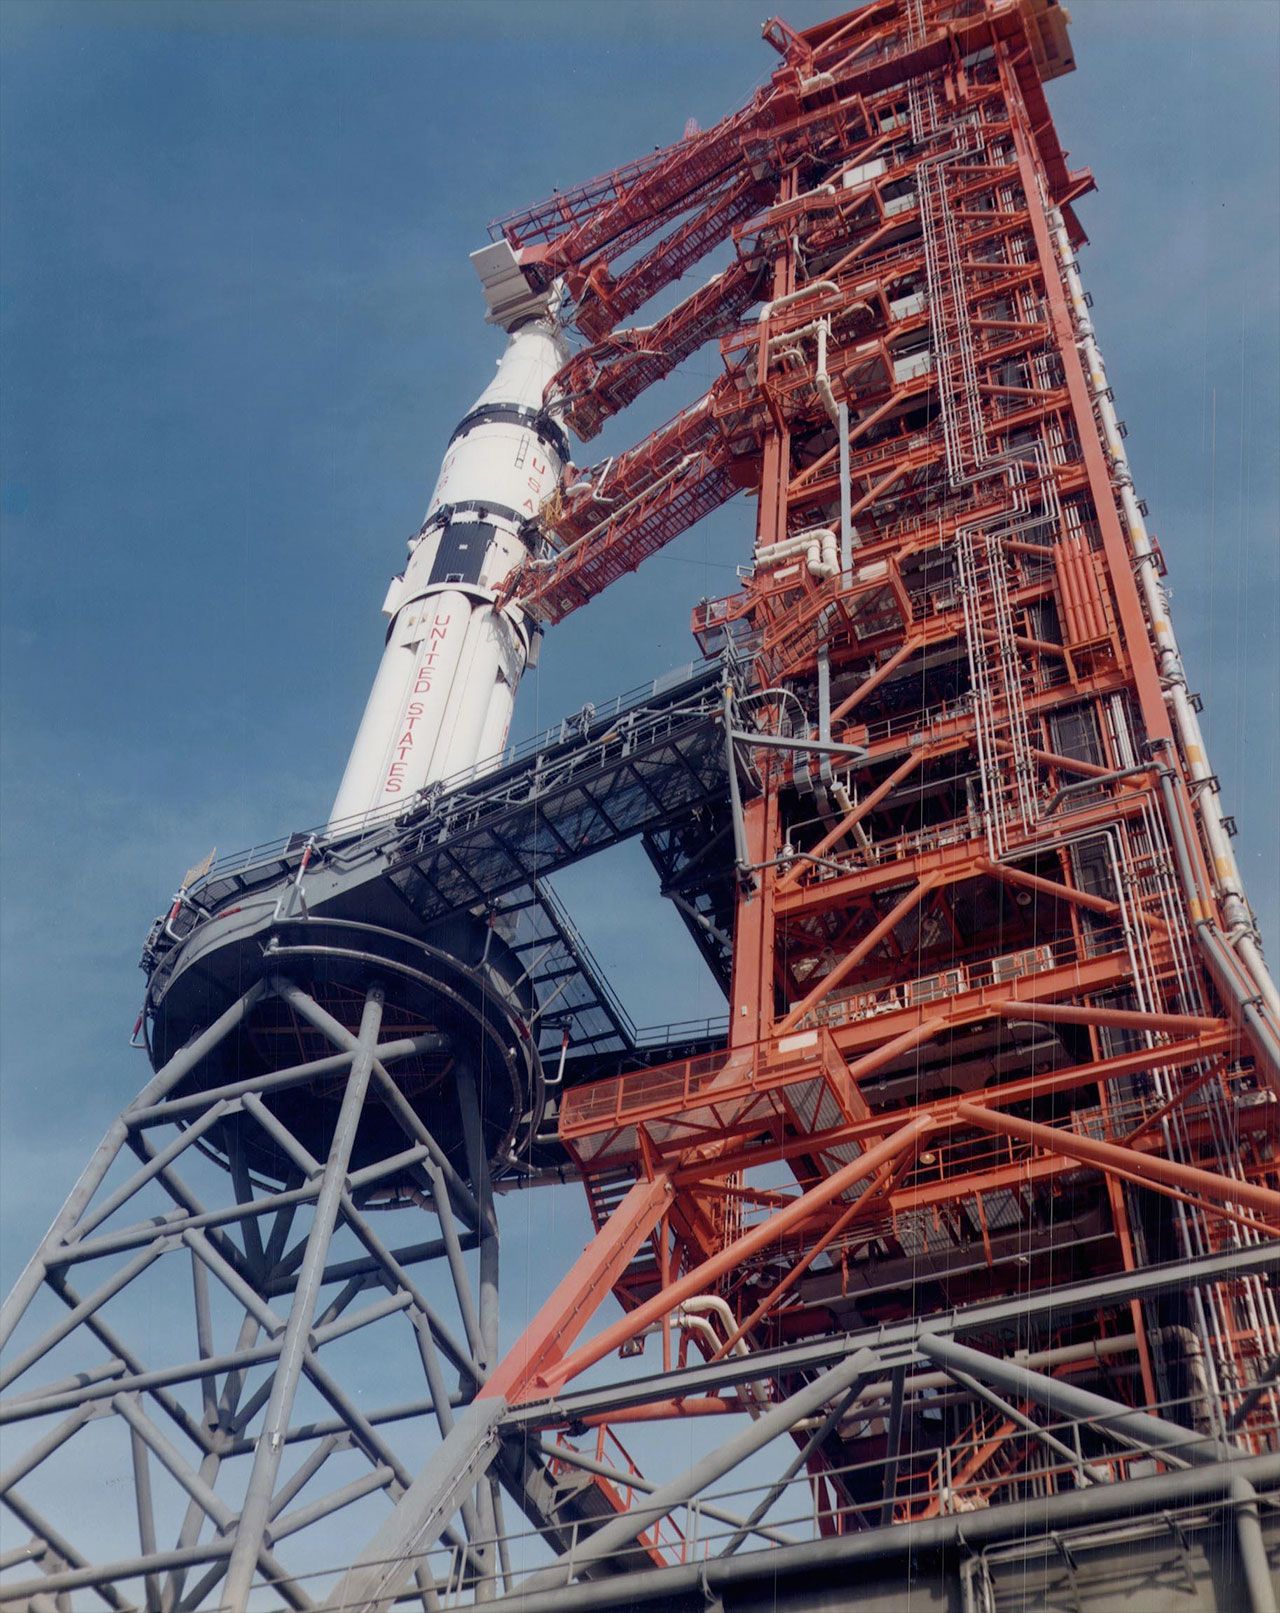 Apollo tower proposed as monument   collectSPACE